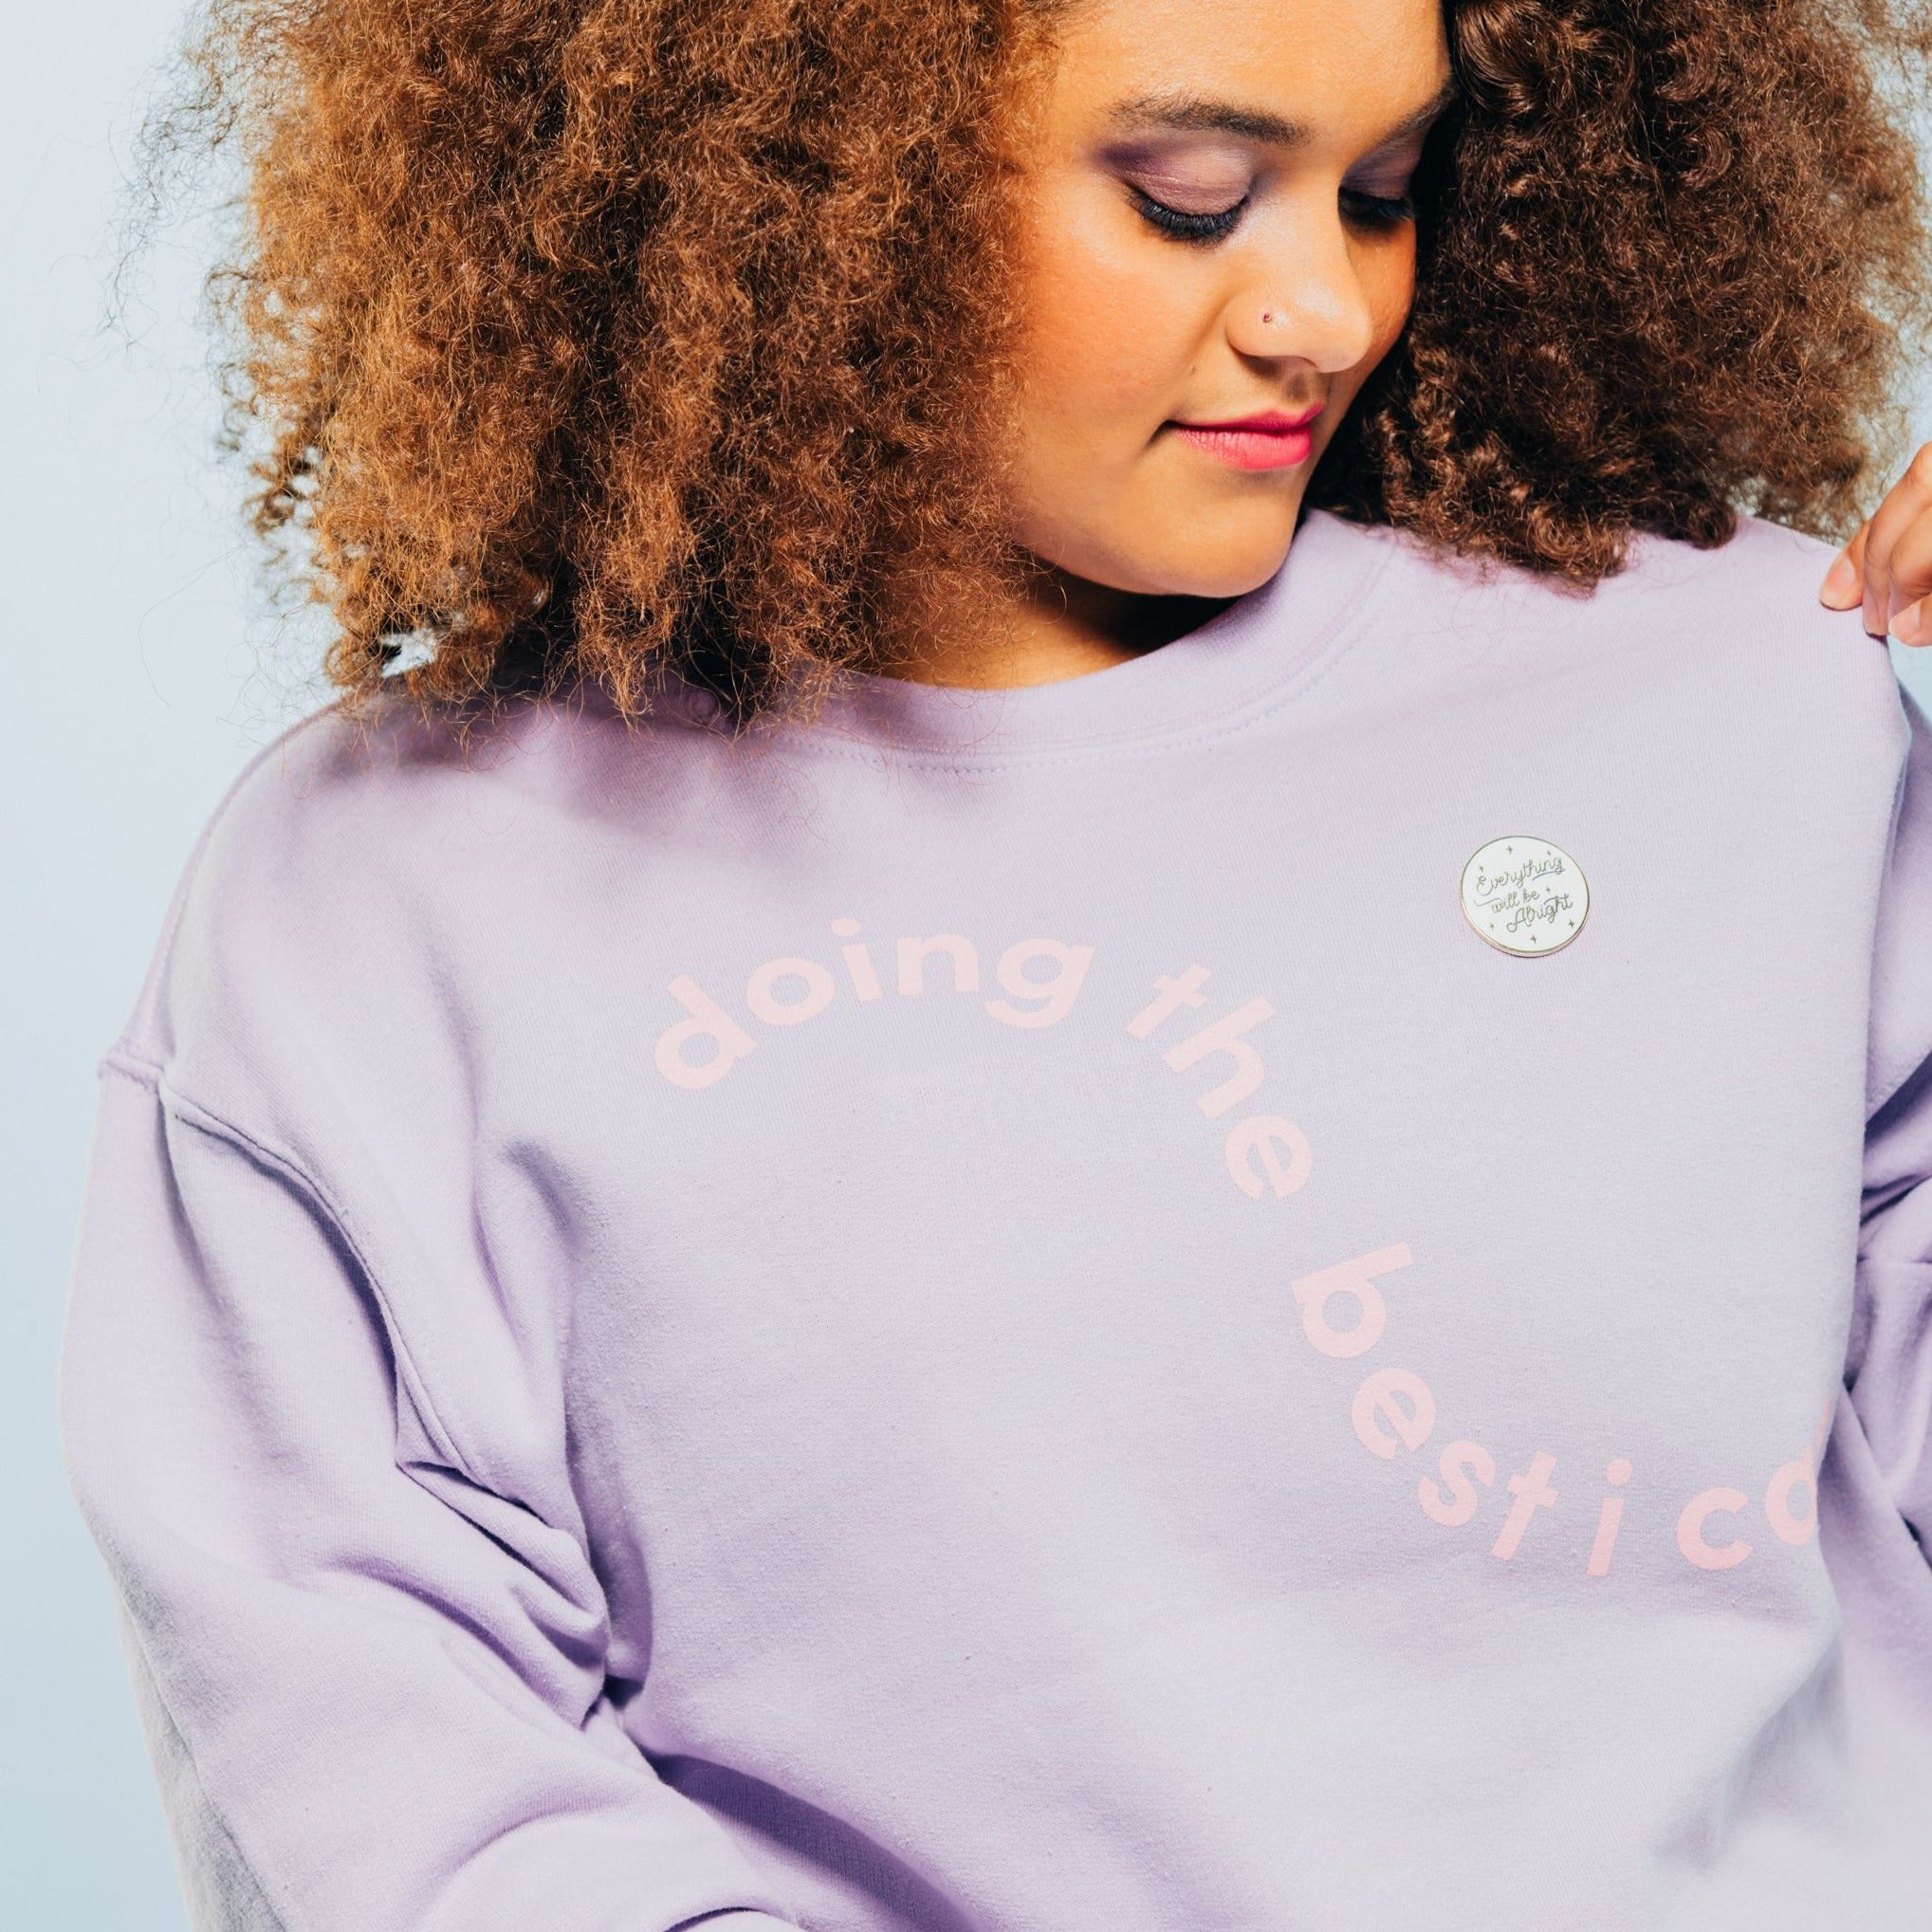 Doing The Best I Can Sweatshirt